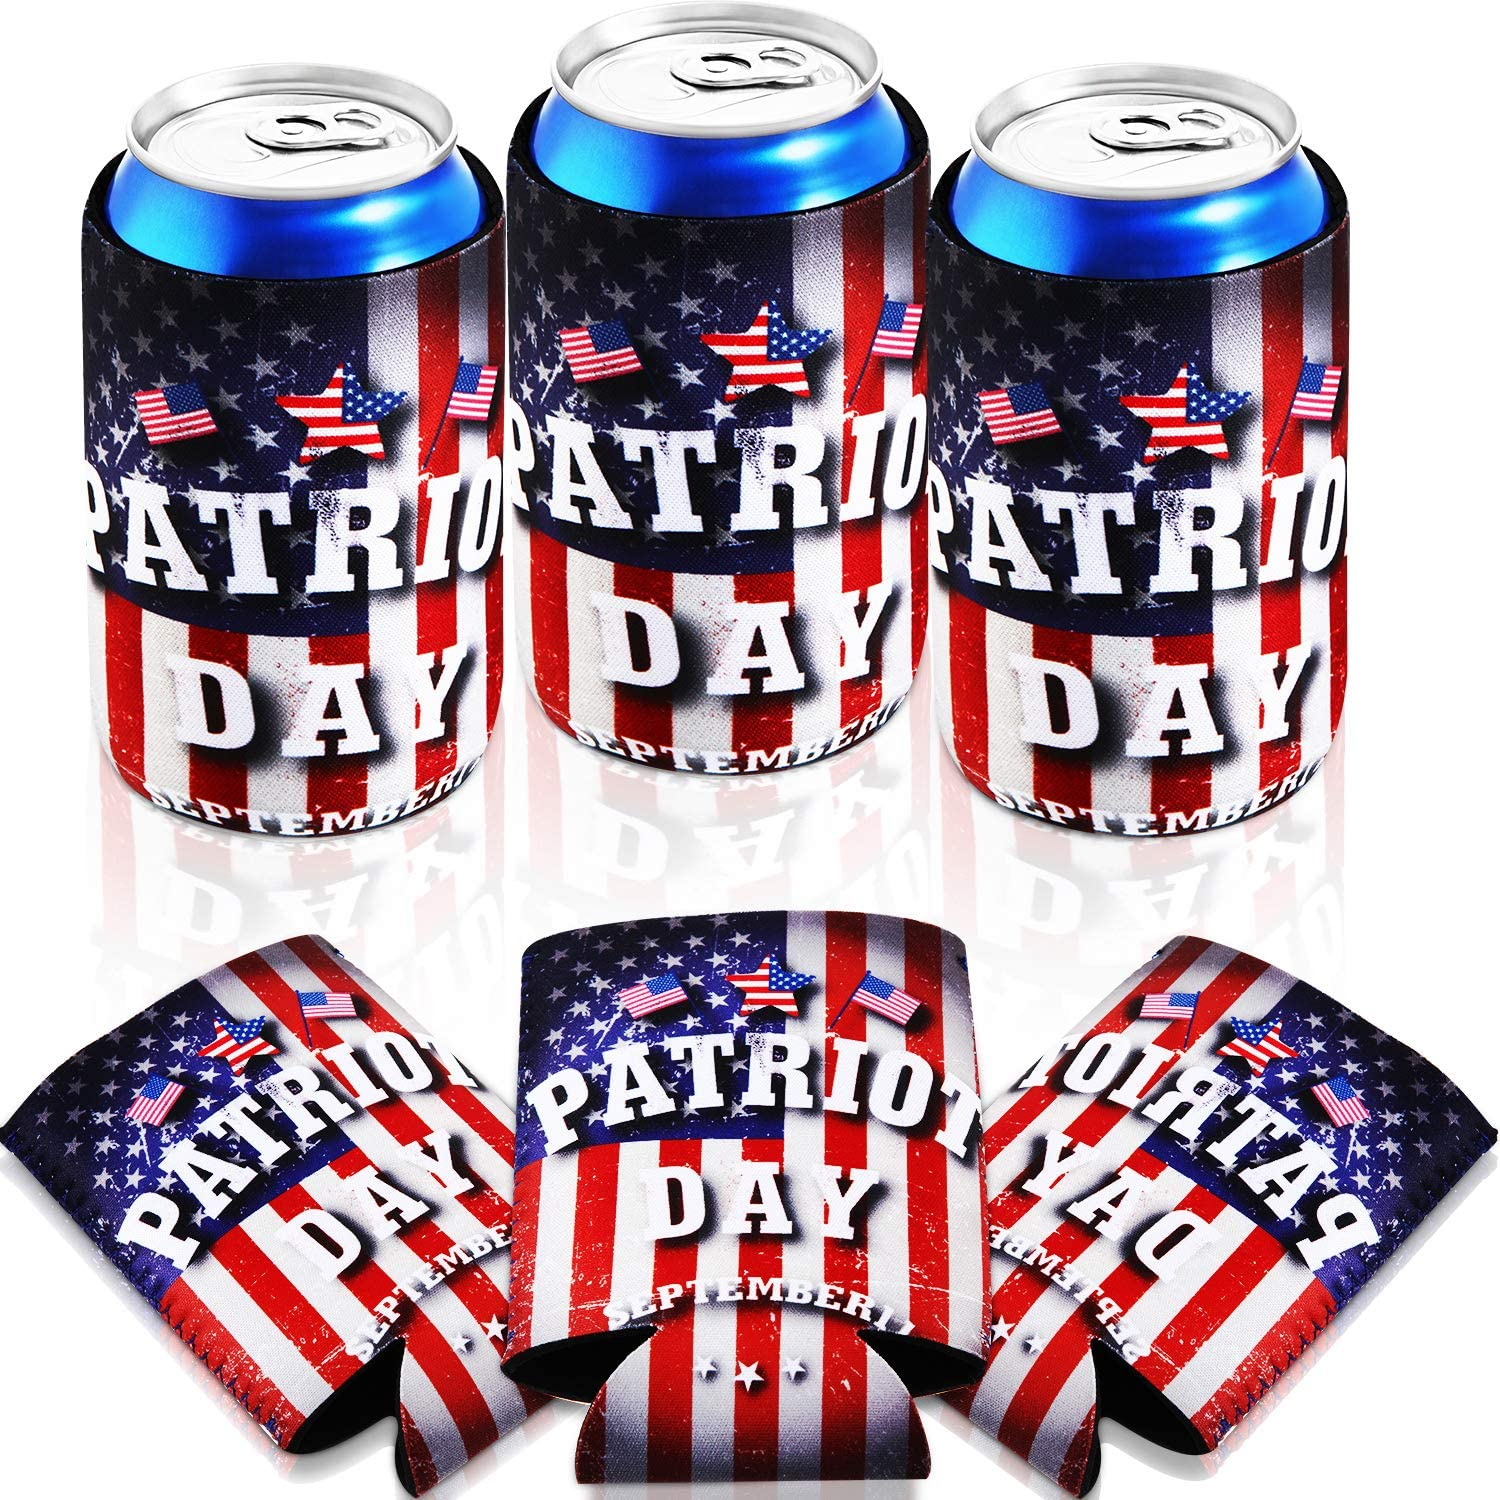 6 Pack/ 12 oz Slim Can Sleeves Neoprene Insulated Beer Can Sleeves Bottles Drink Coolies for Hawaii BBQ Wedding Fiesta Favor Party Gifts (Patriot Day)